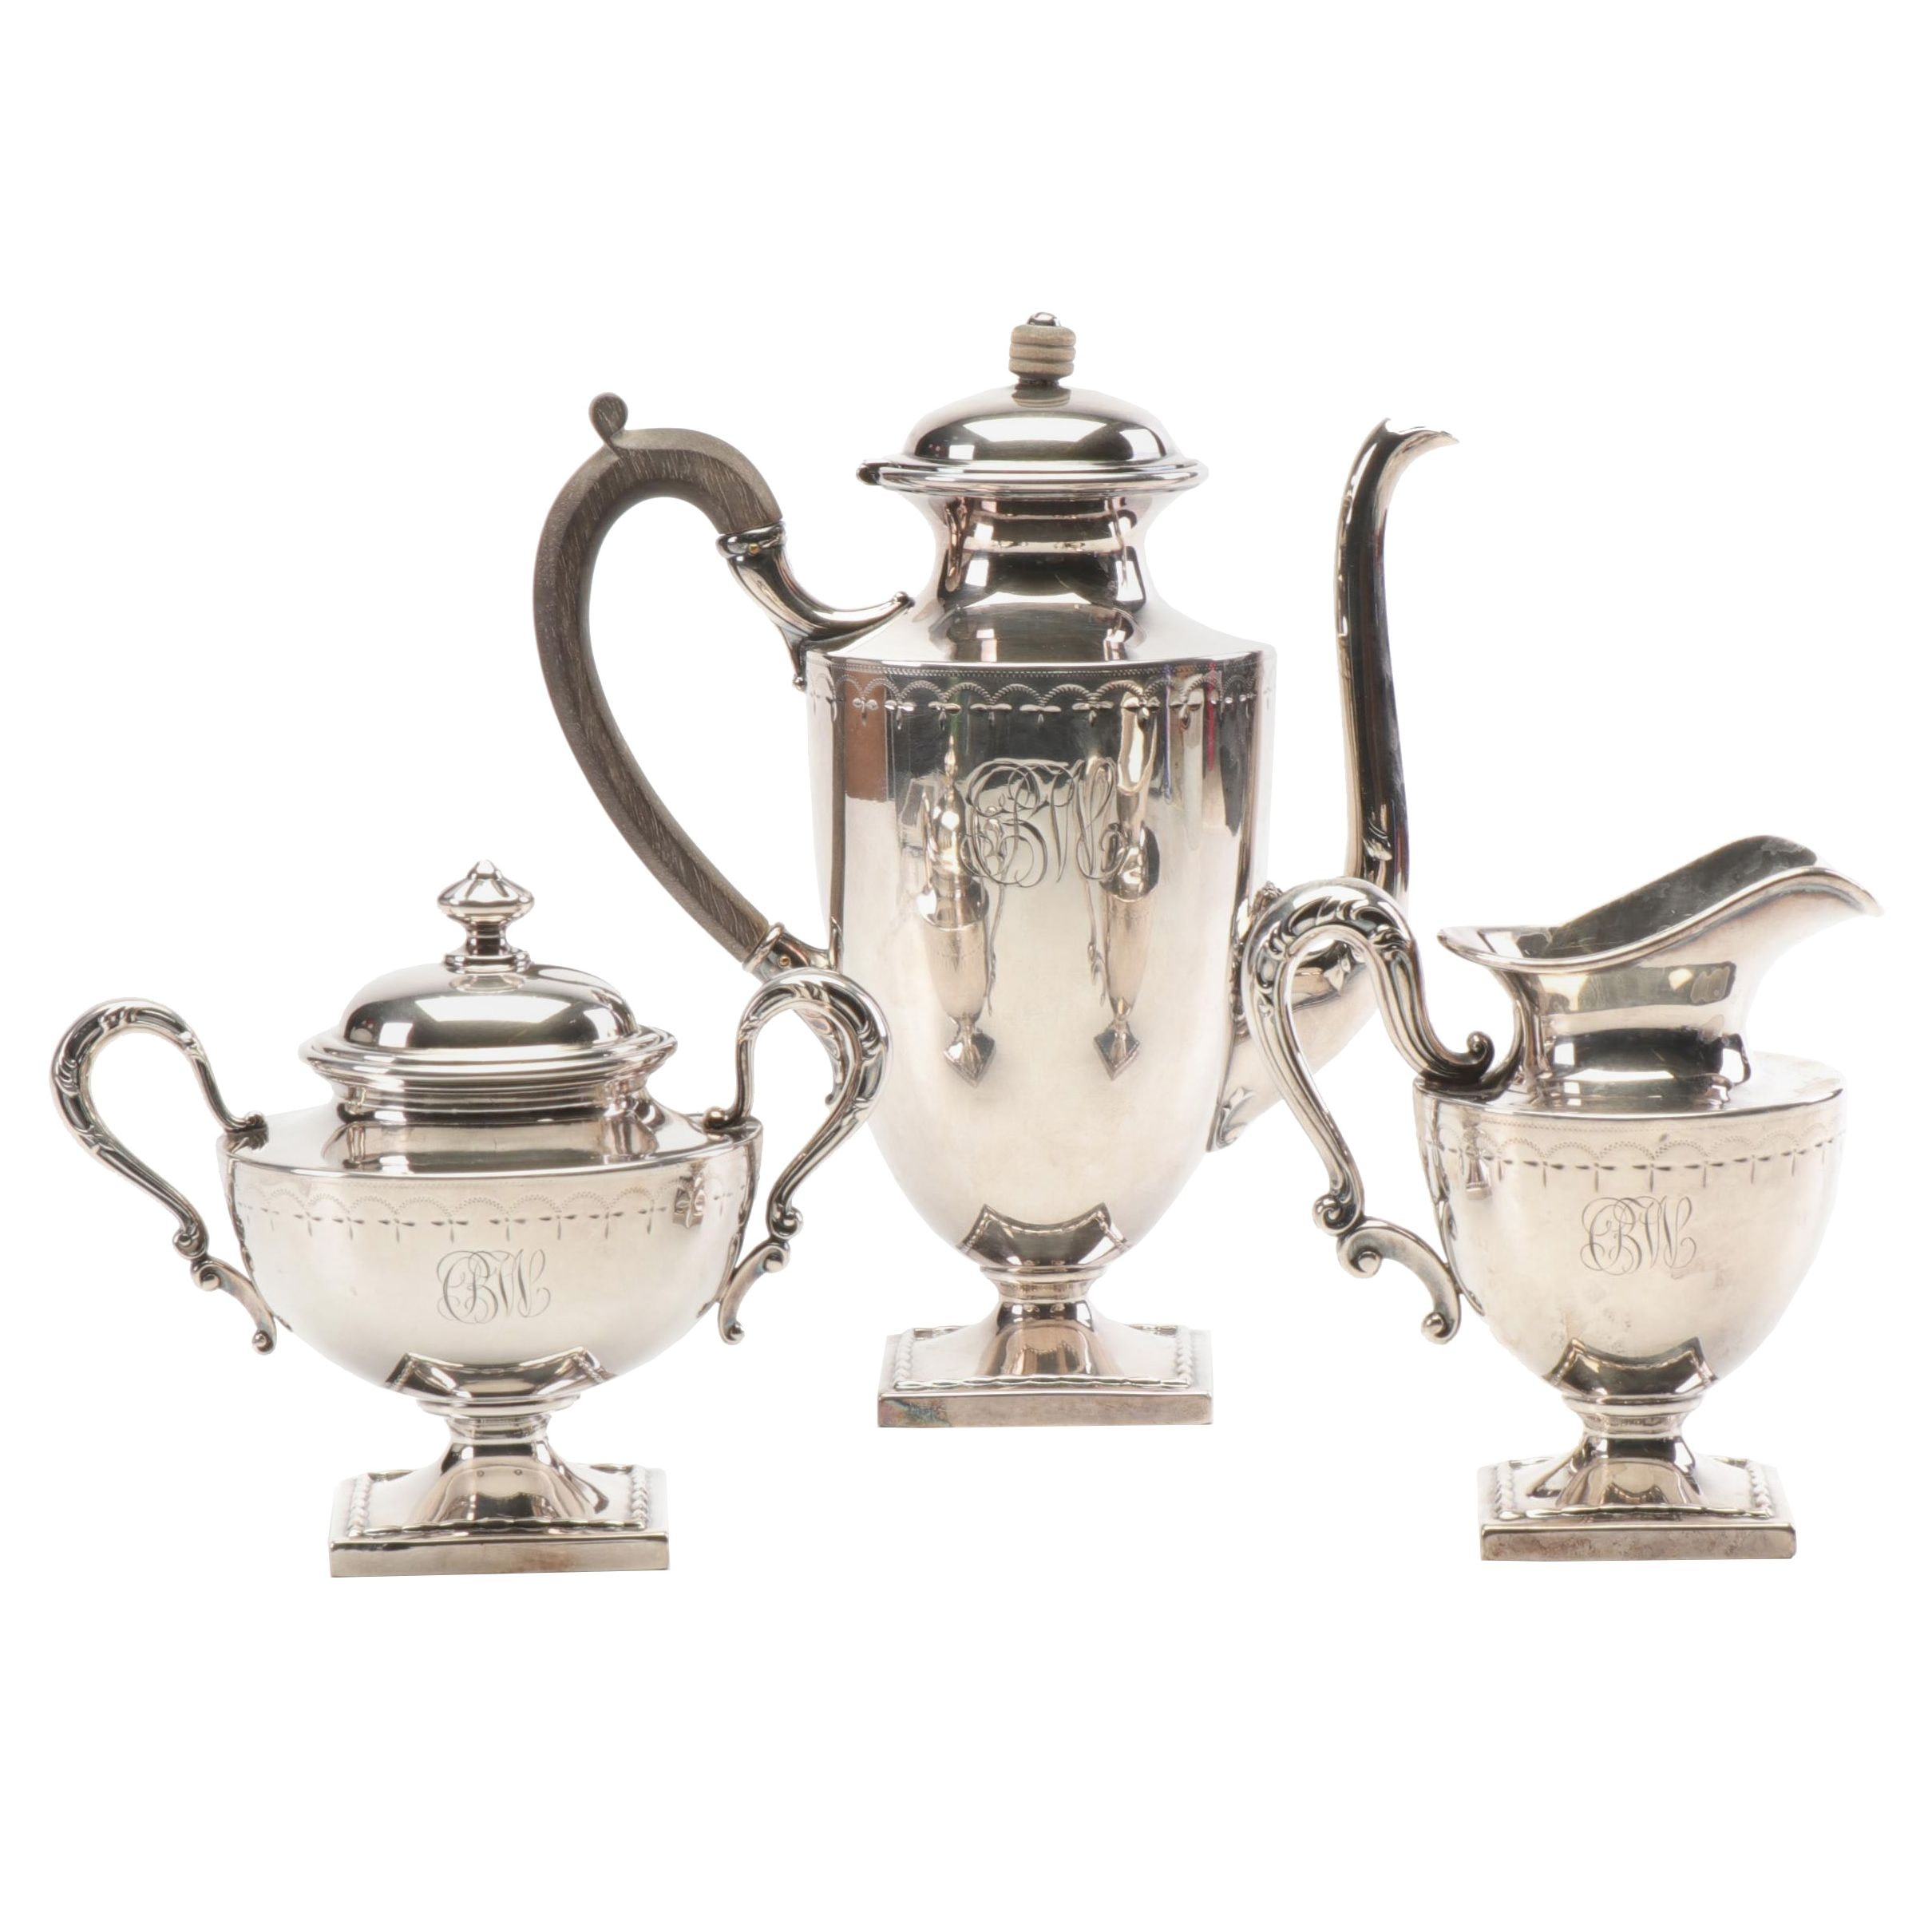 Wilcox Silver Plated Coffee Serving Set